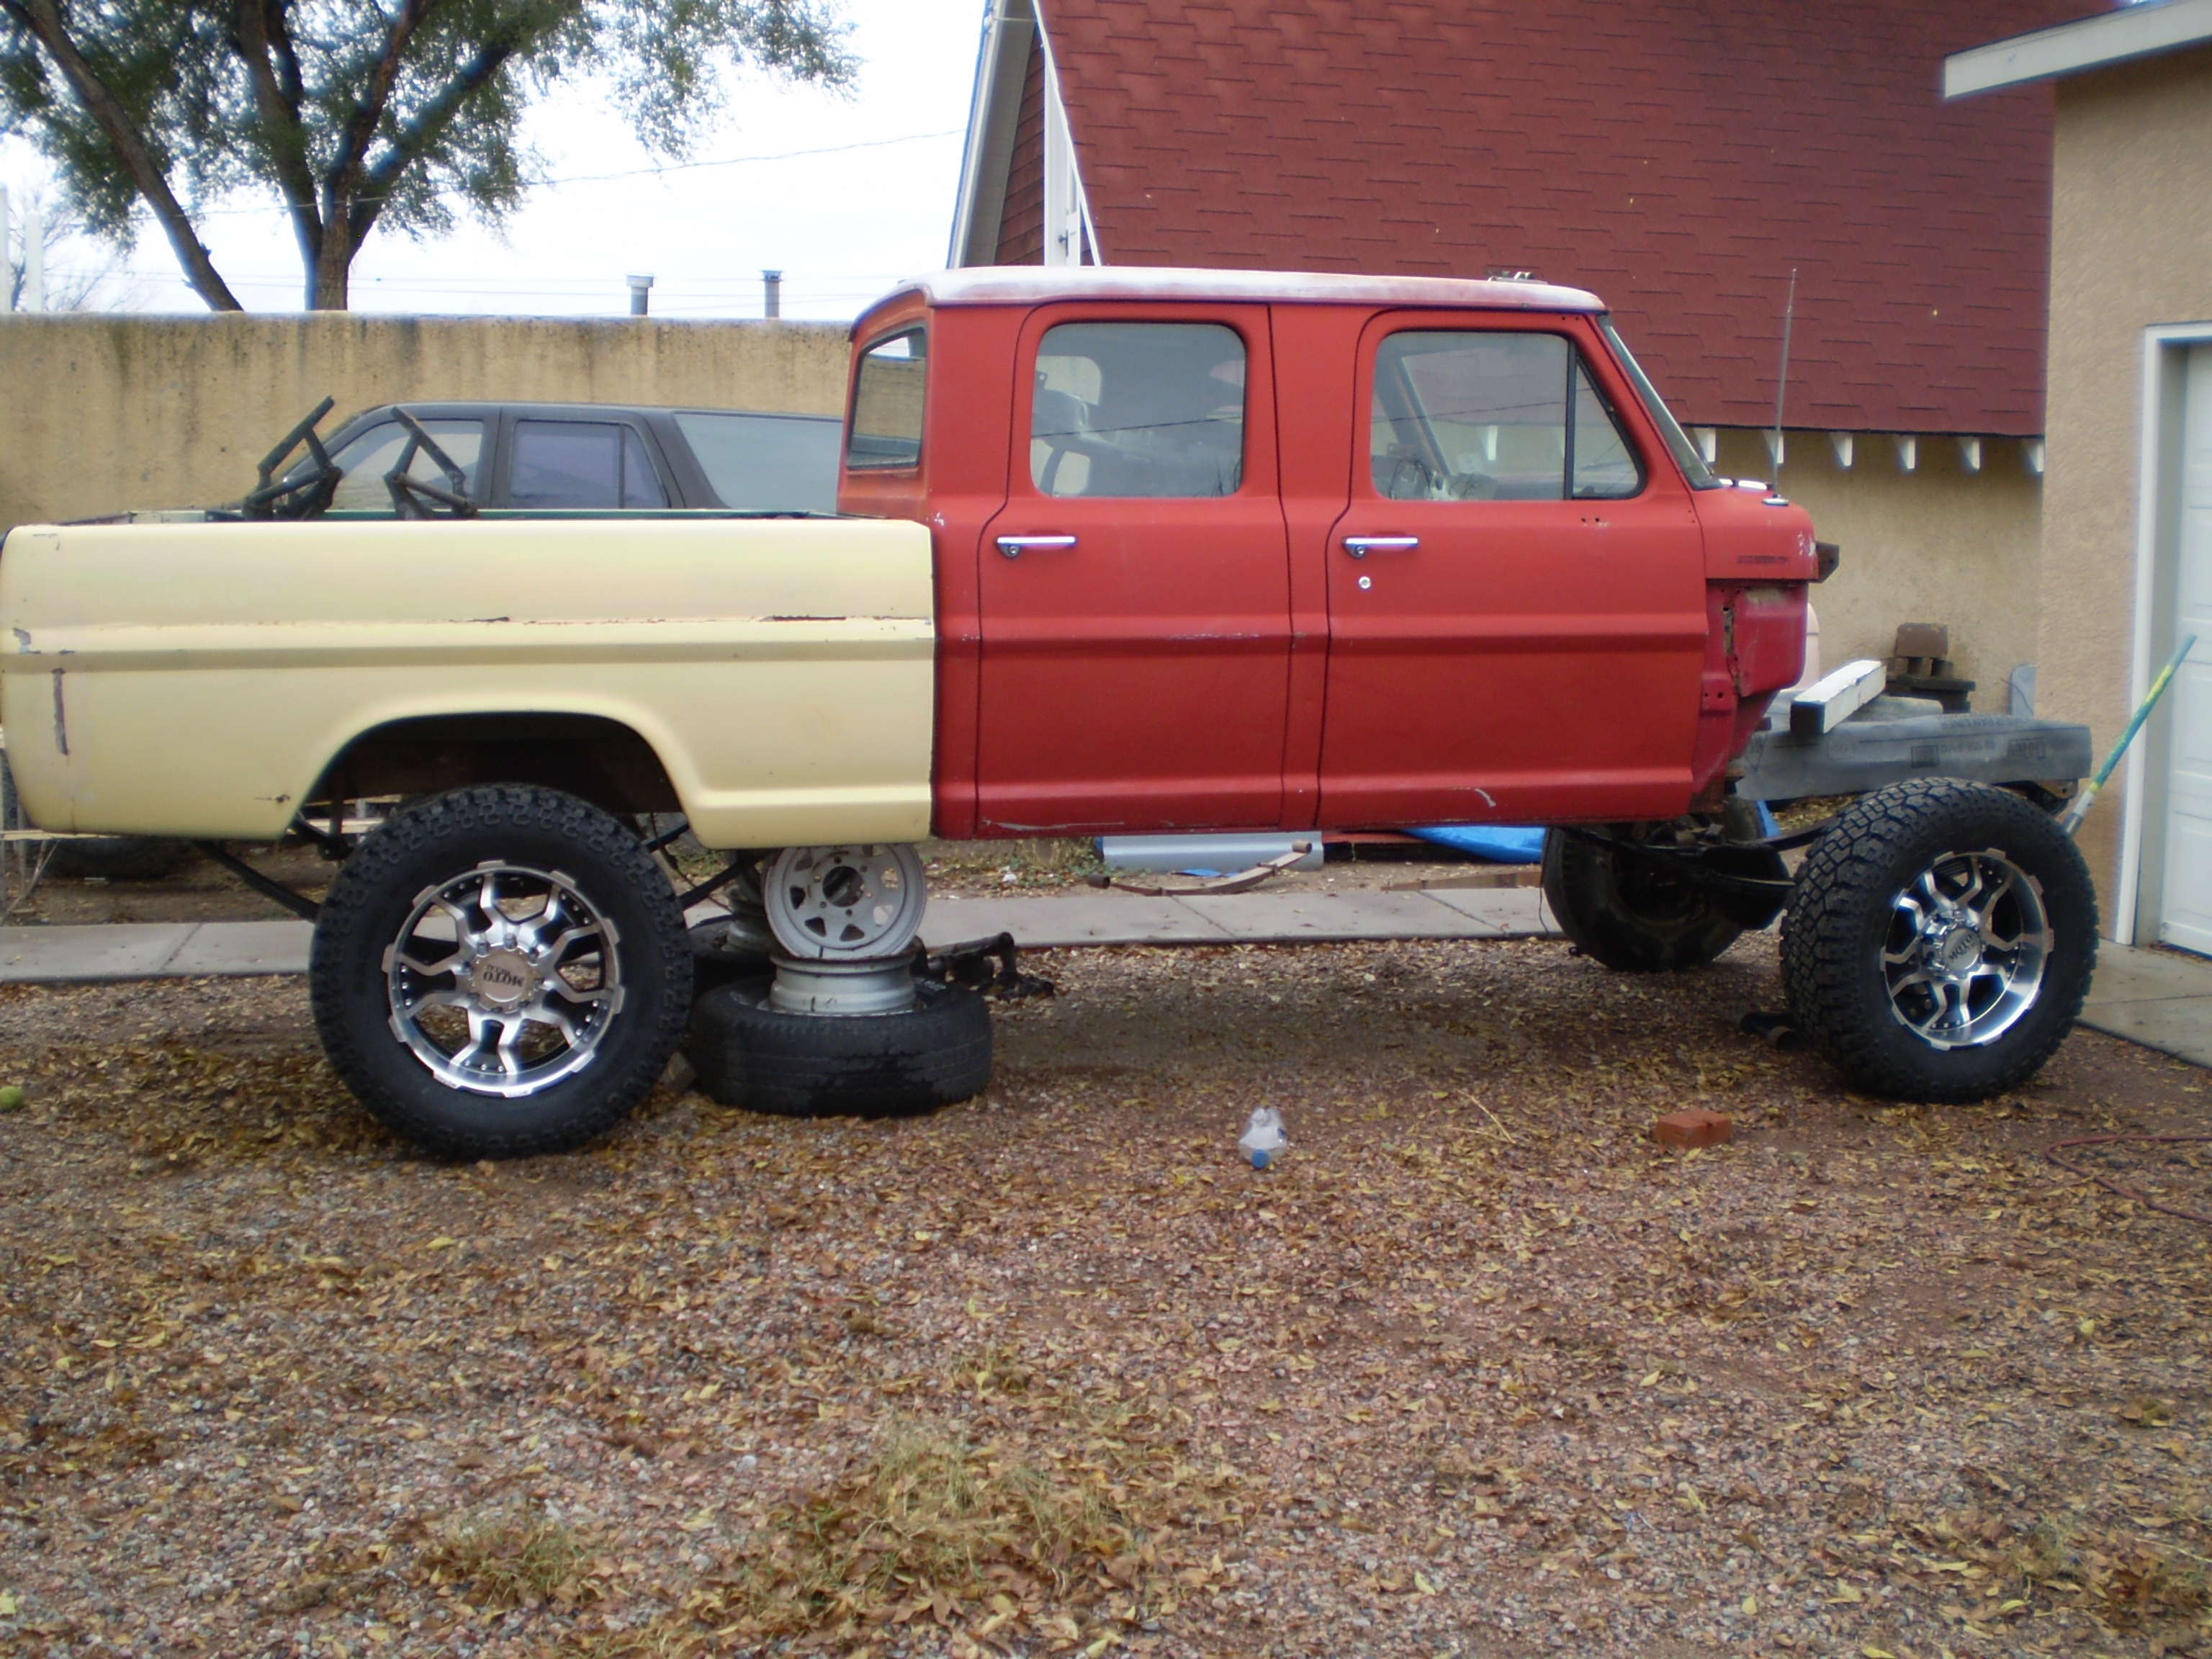 themadscientist1's 1972 Ford F350 Super Duty Crew Cab